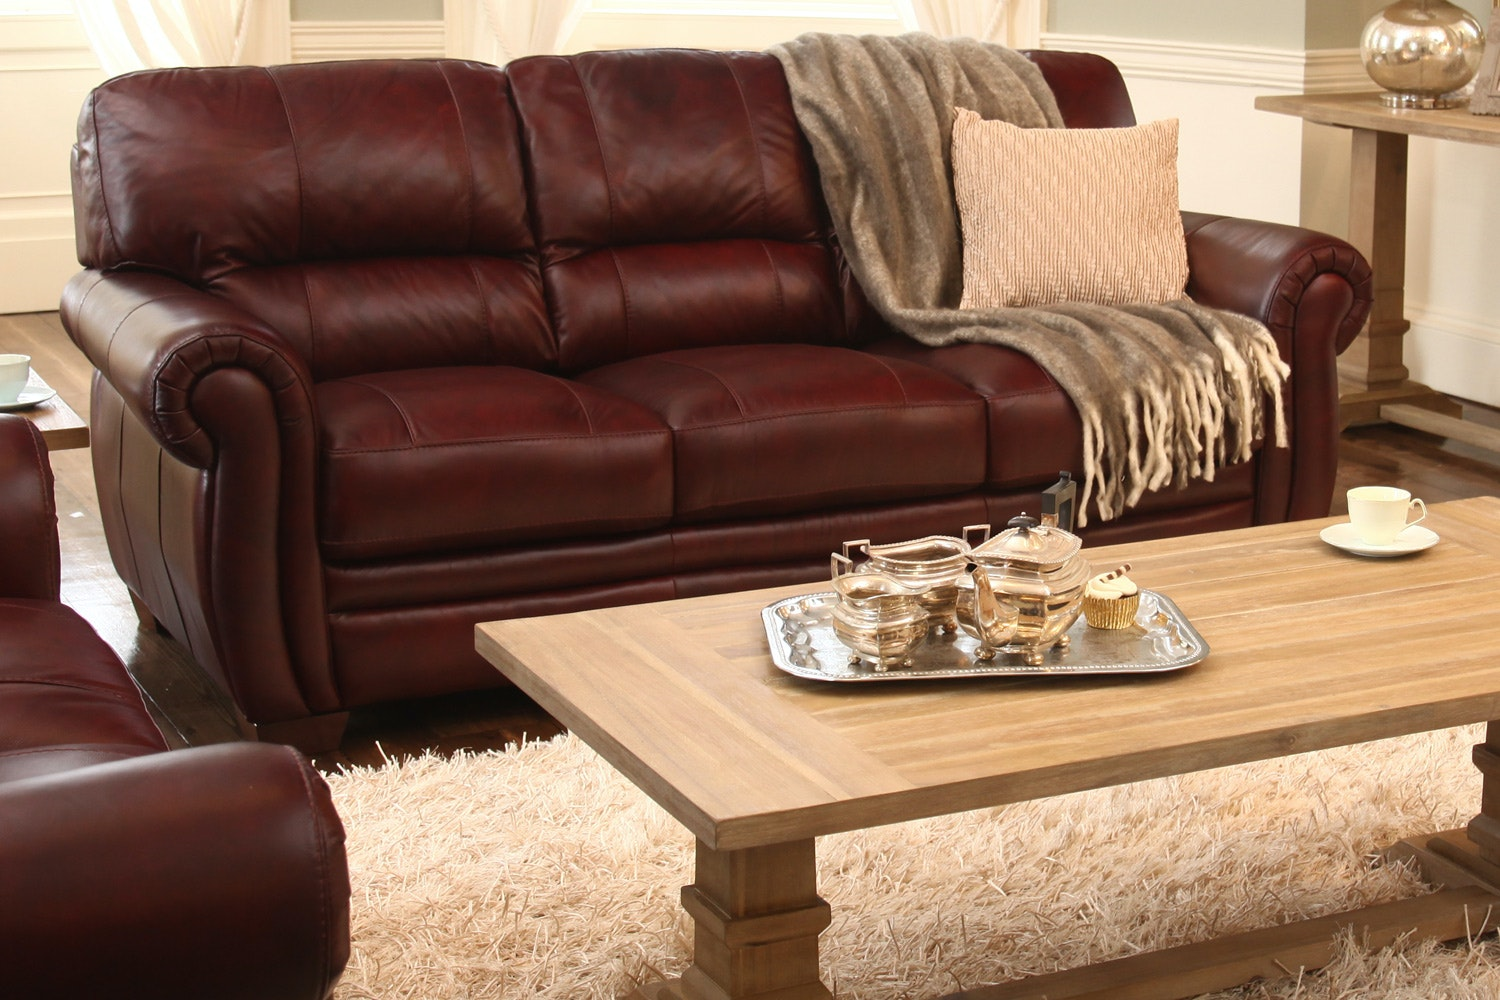 Wilton 3 Seater Leather Sofa